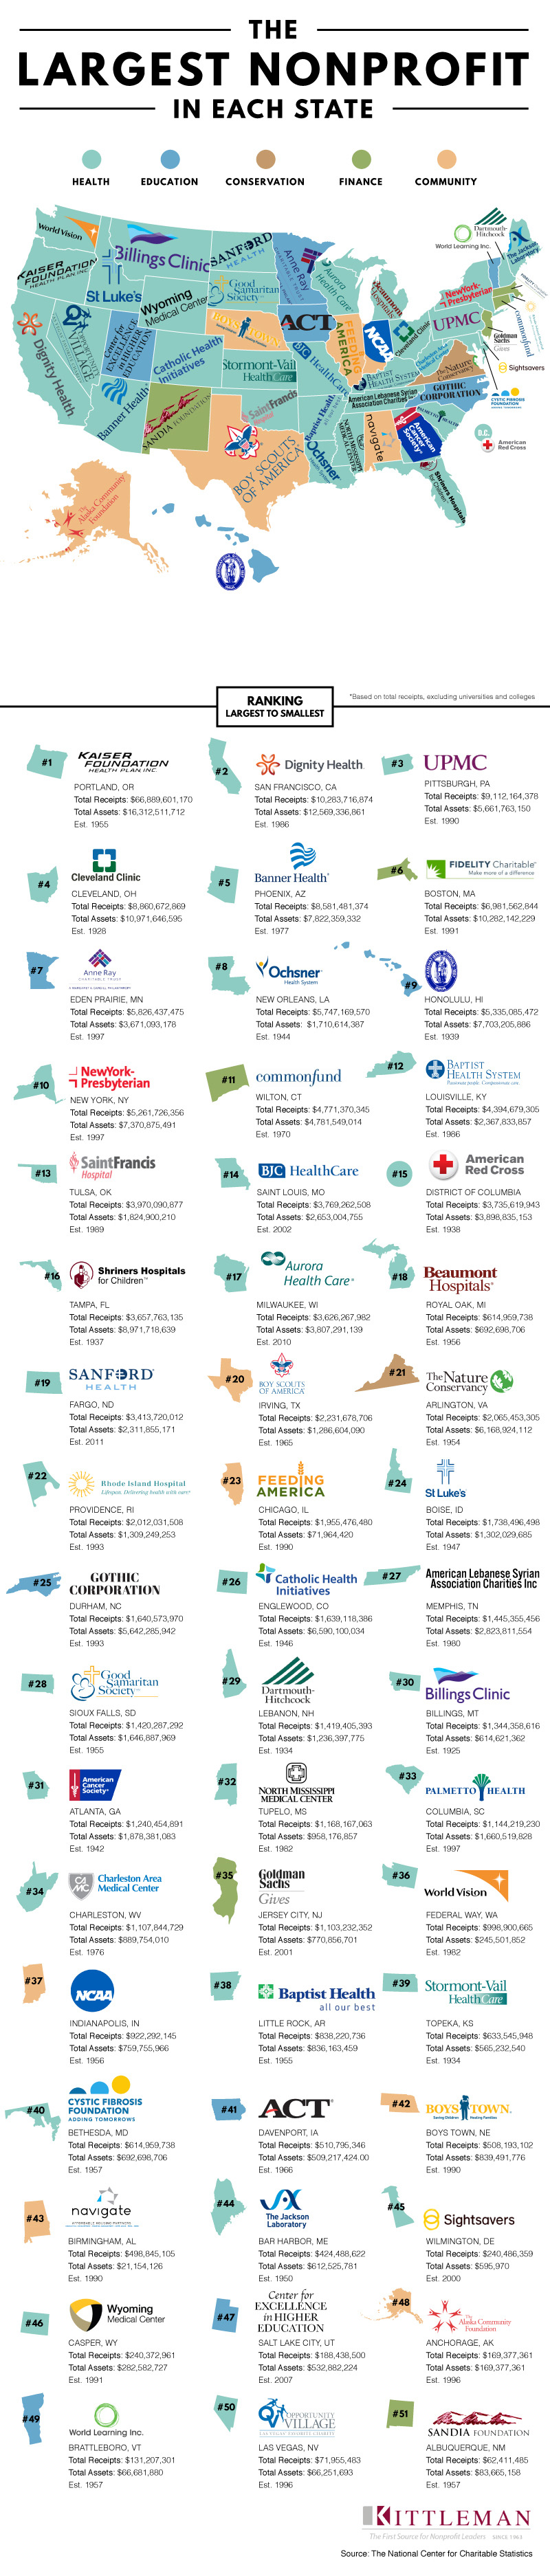 Top Nonprofit Organizations In The United States [Infographic]